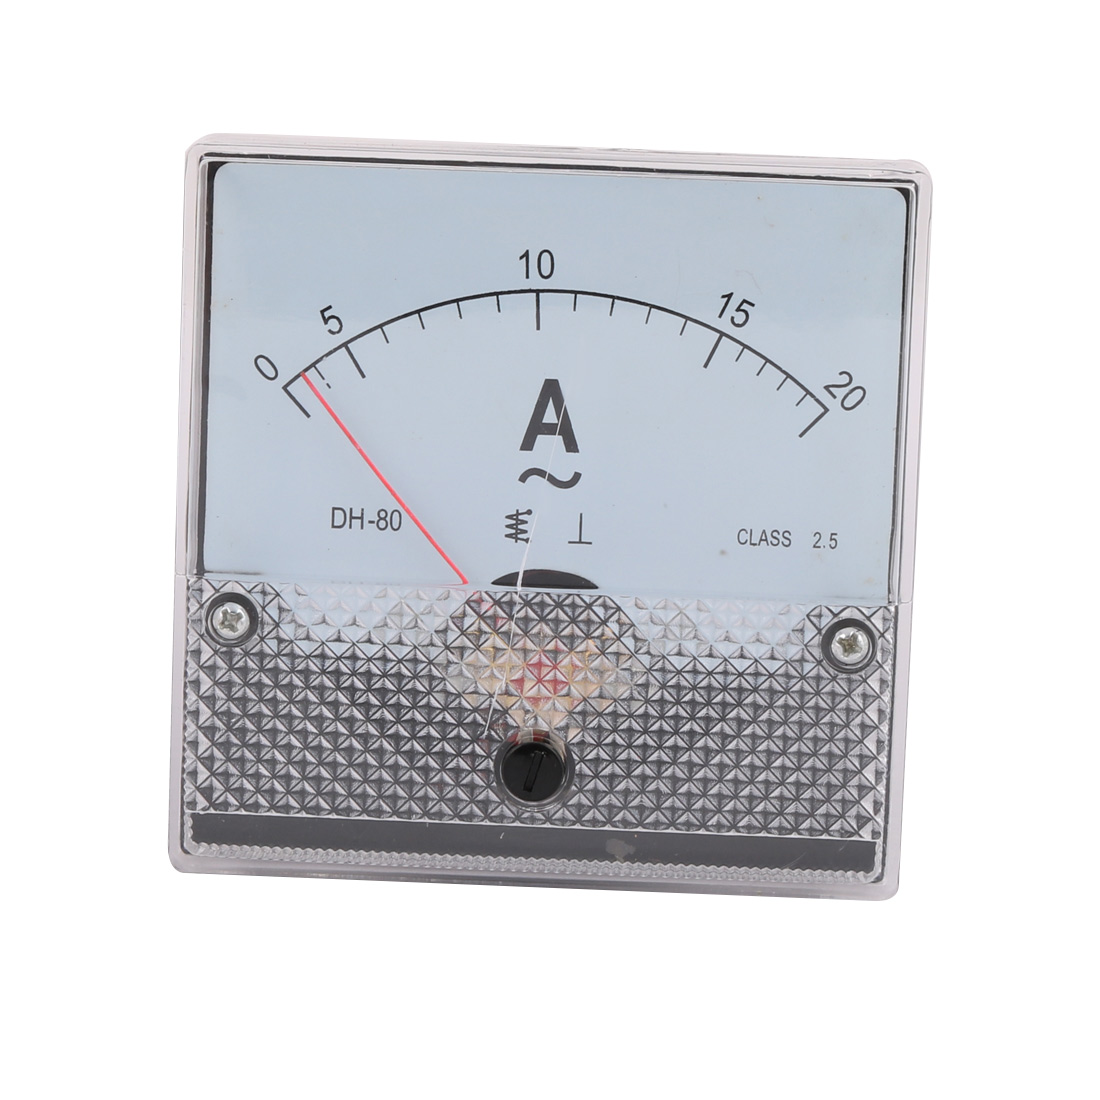 DH-80 Class 2.5 Accuracy AC 0-20A Analog Panel Meter Ammeter Amperemeter - image 3 de 3